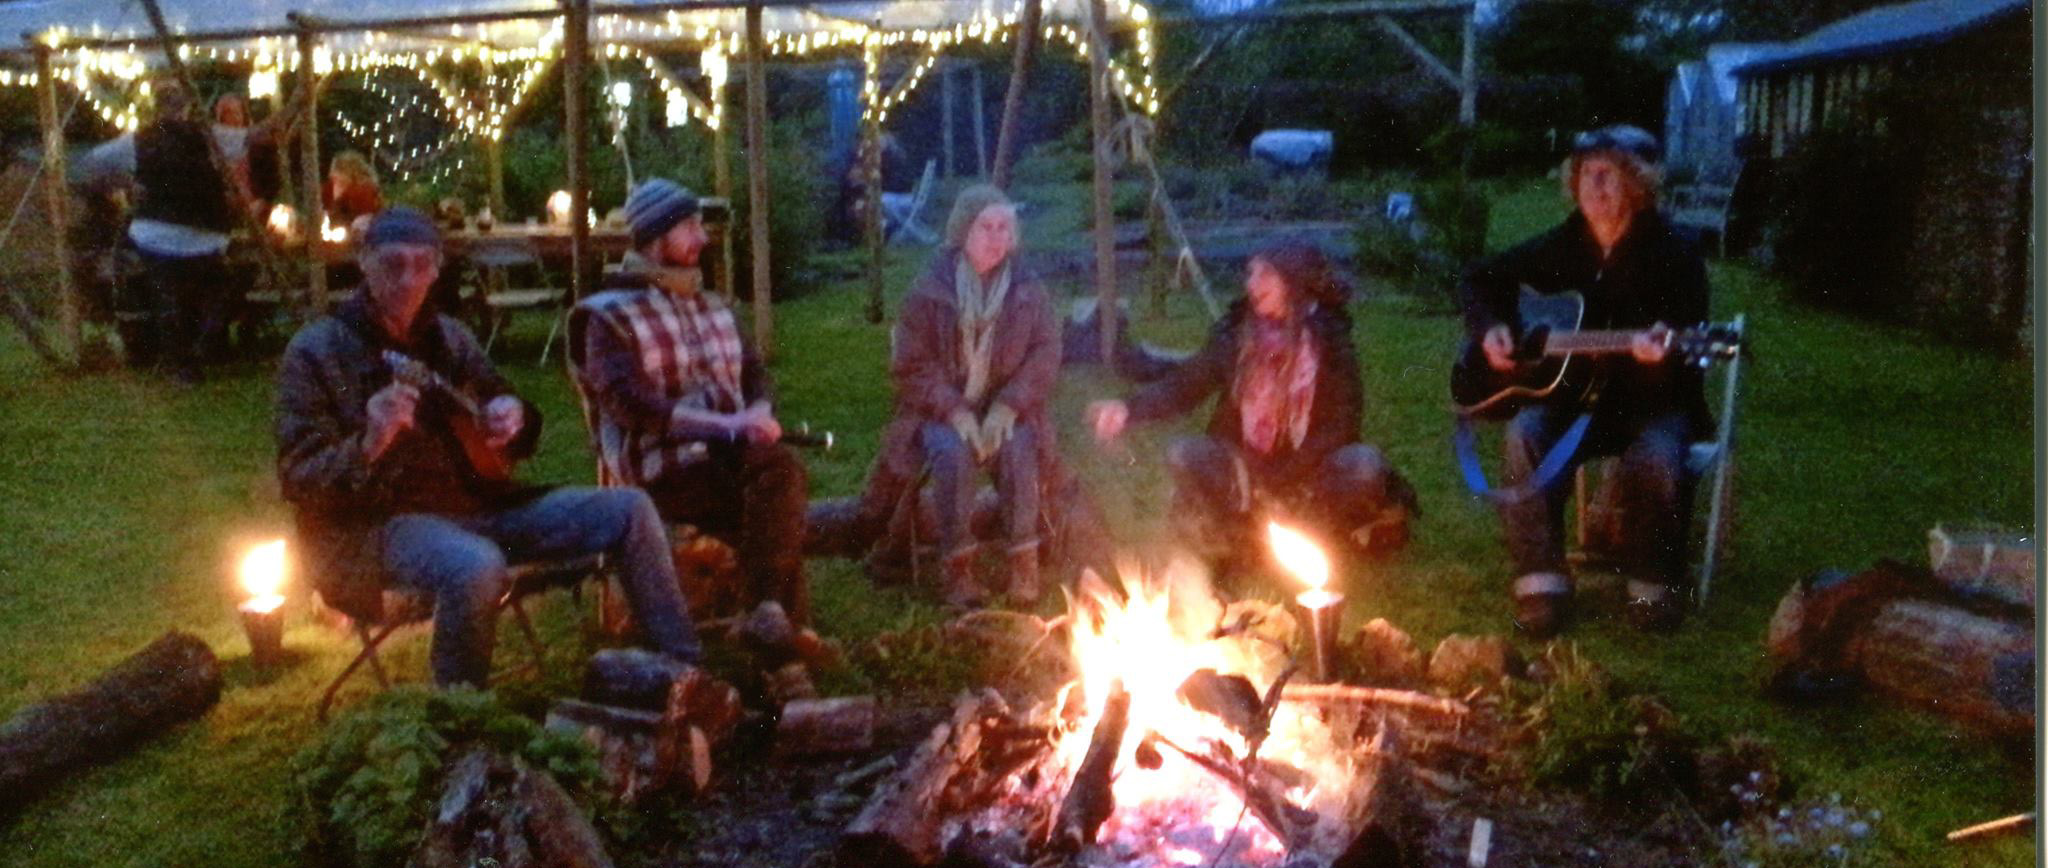 Firelight Folk - Folk singers in Somerset